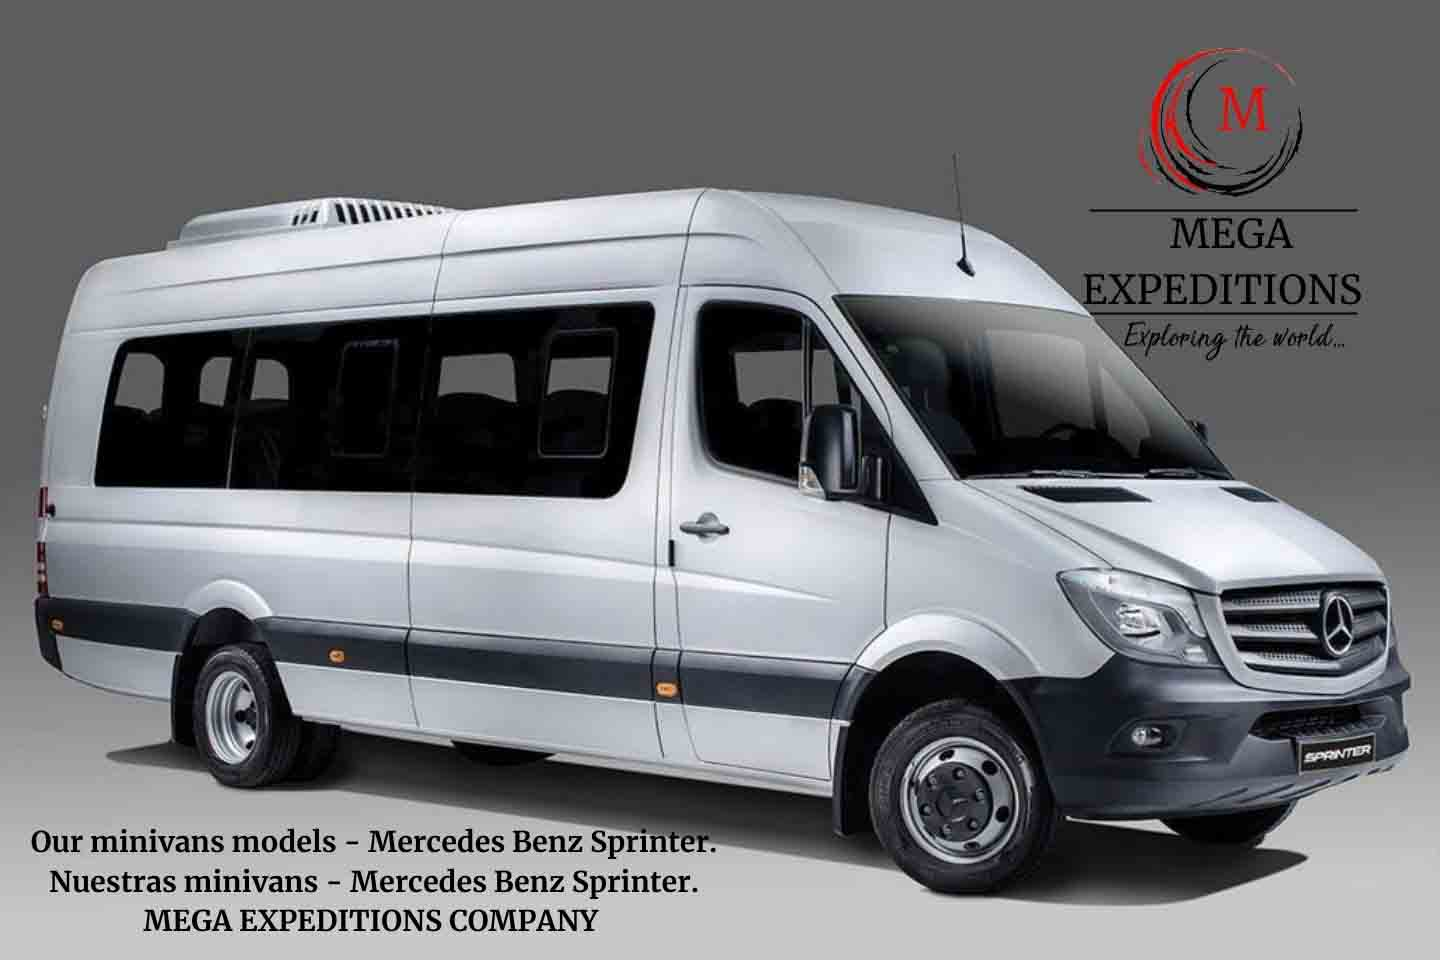 Our minivans models - Mercedes Benz Sprinter. Nuestras minivans - Mercedes Benz Sprinter. MEGA EXPEDITIONS COMPANY